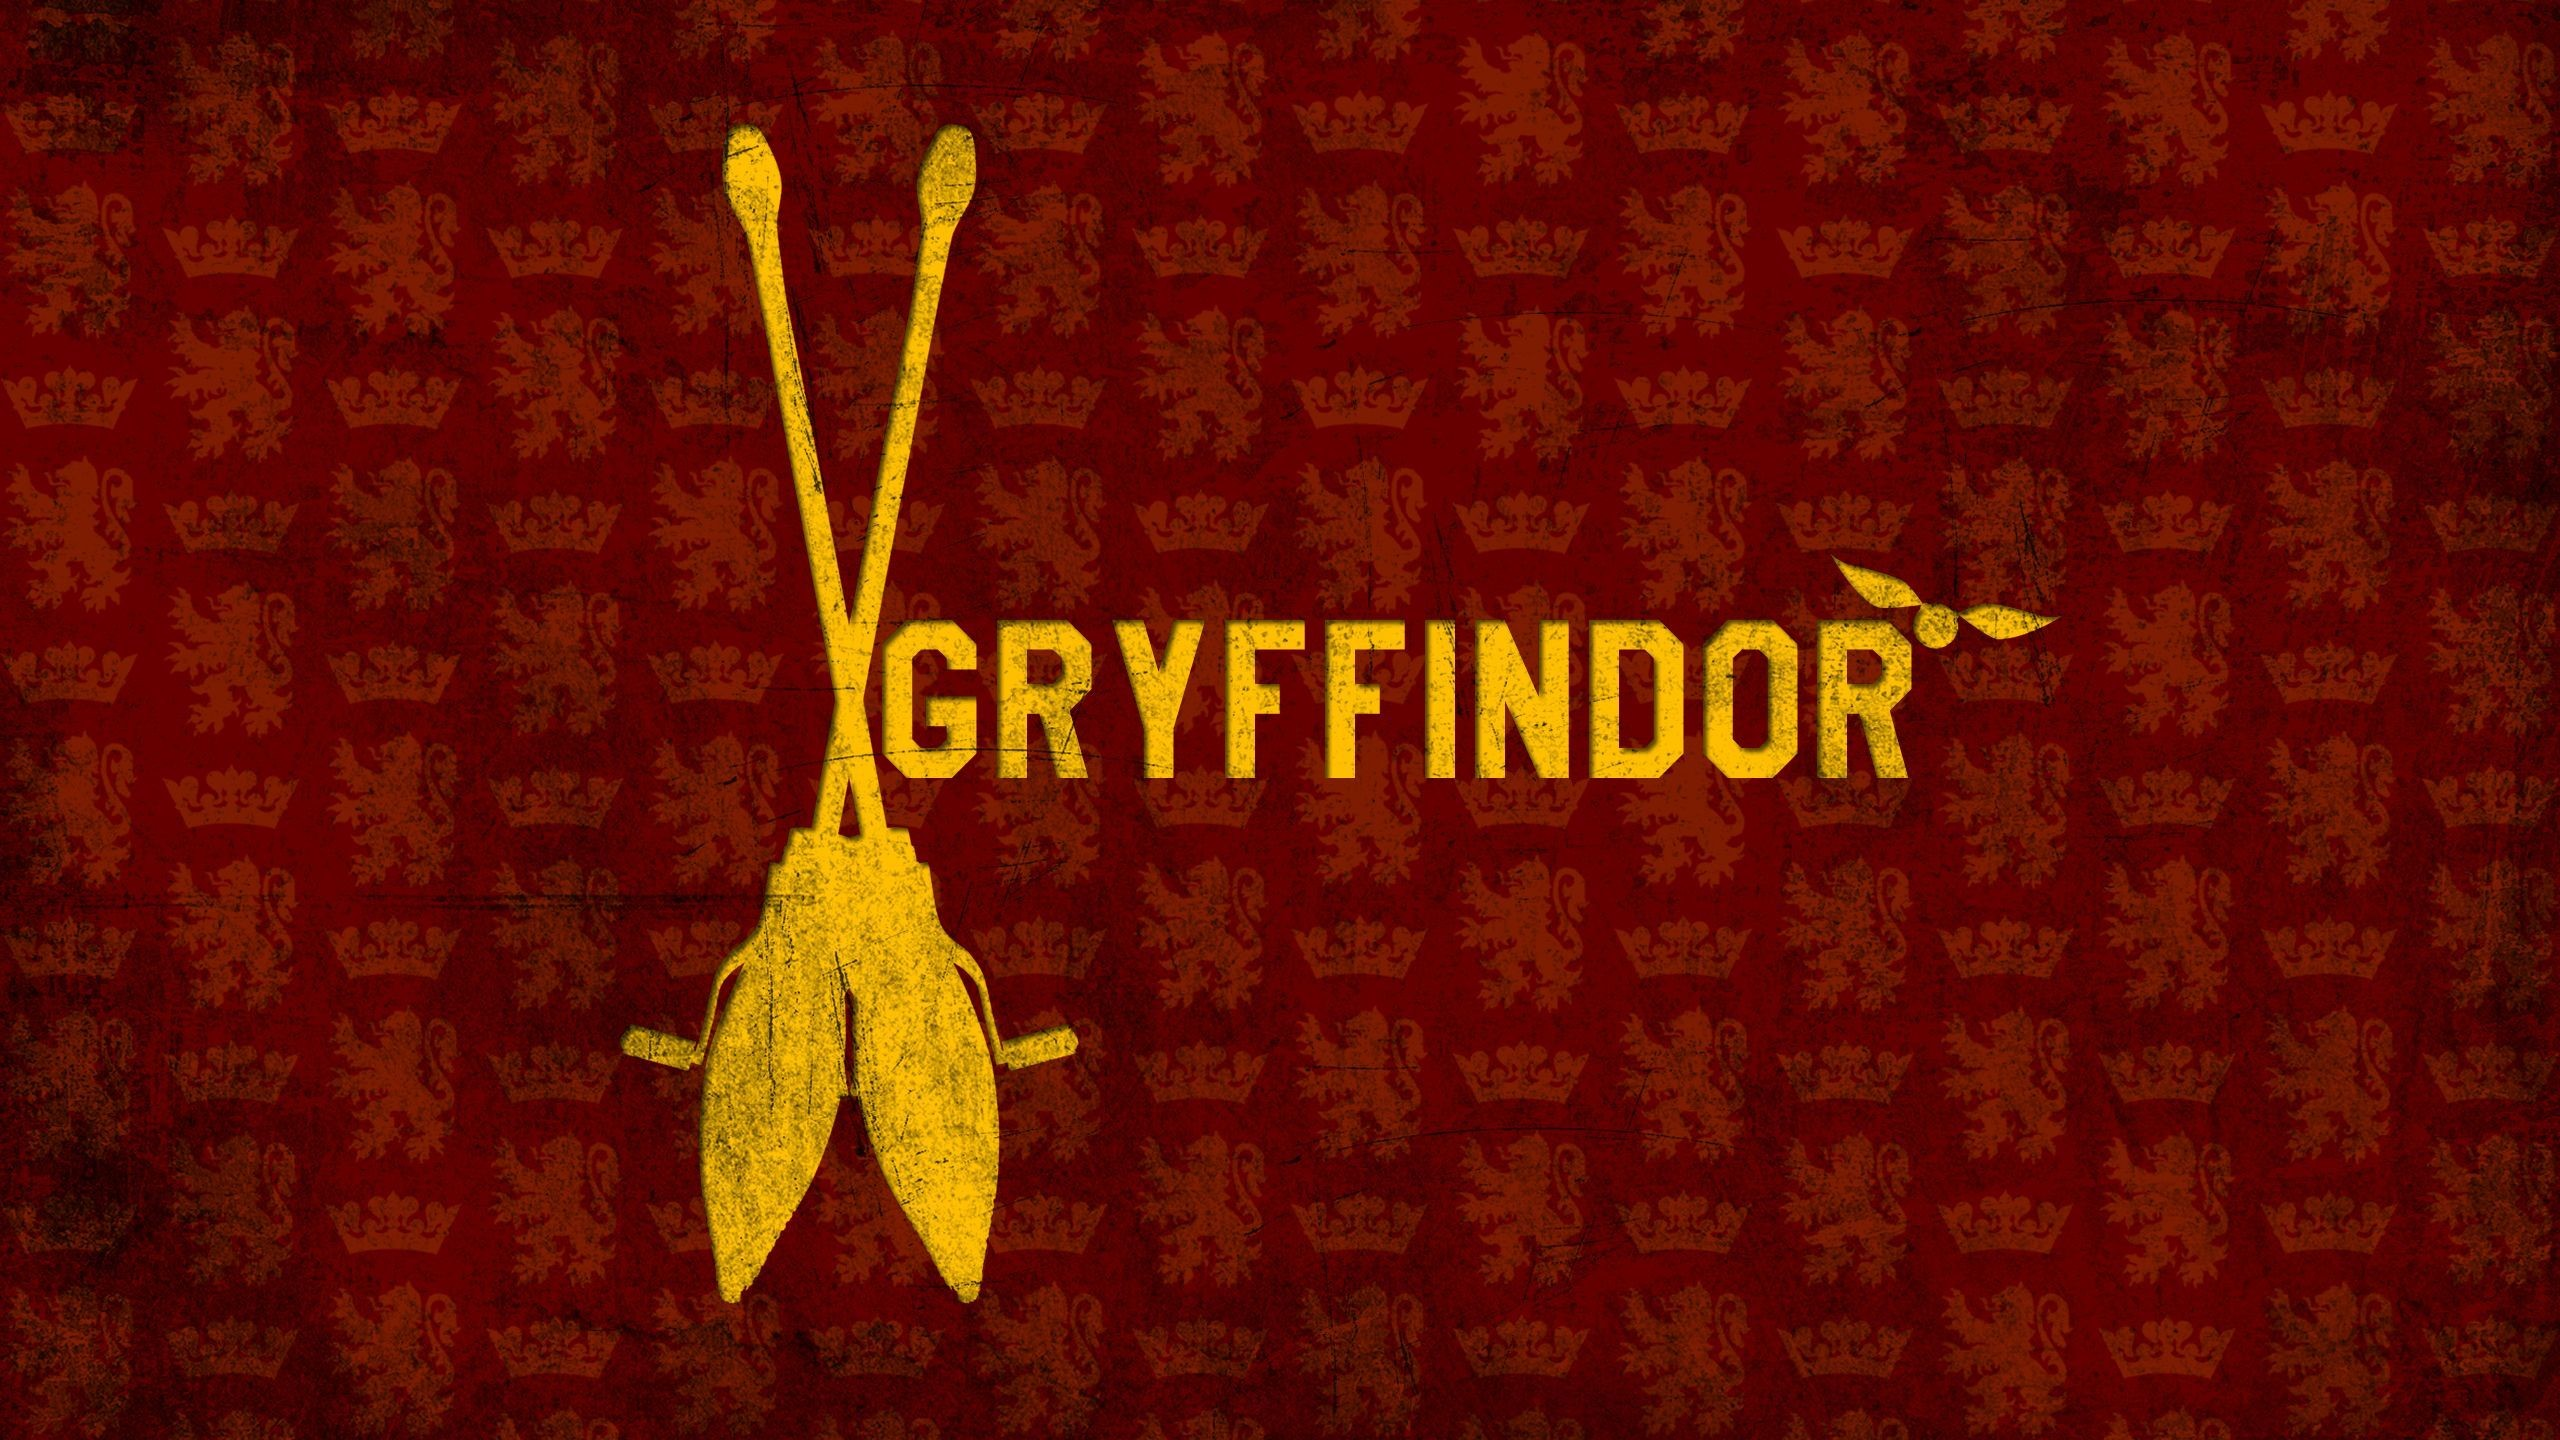 Res: 2560x1440, Gryffindor Wallpaper